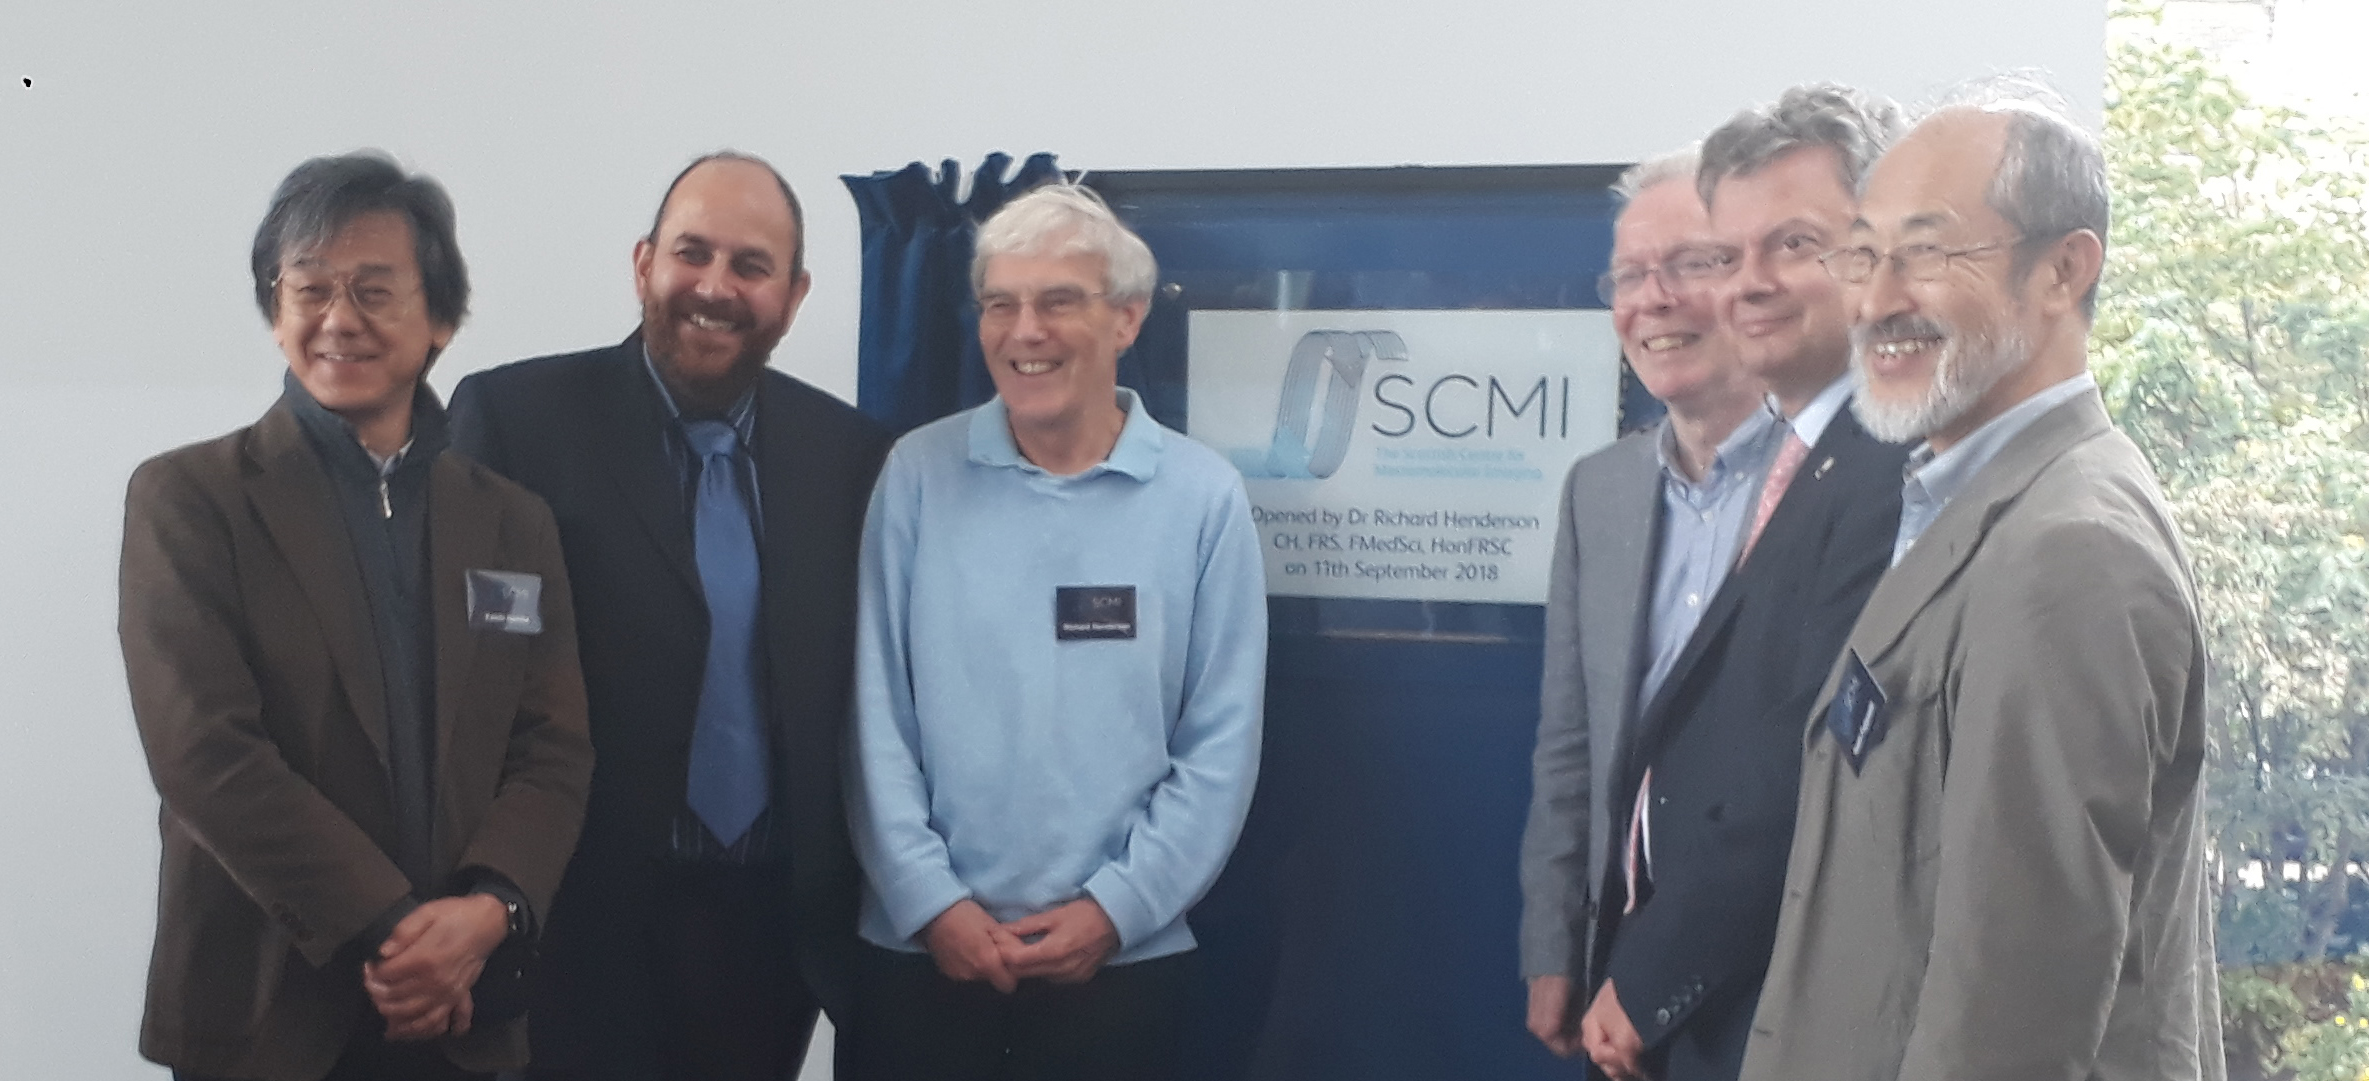 Opening of SCMI in Glasgow